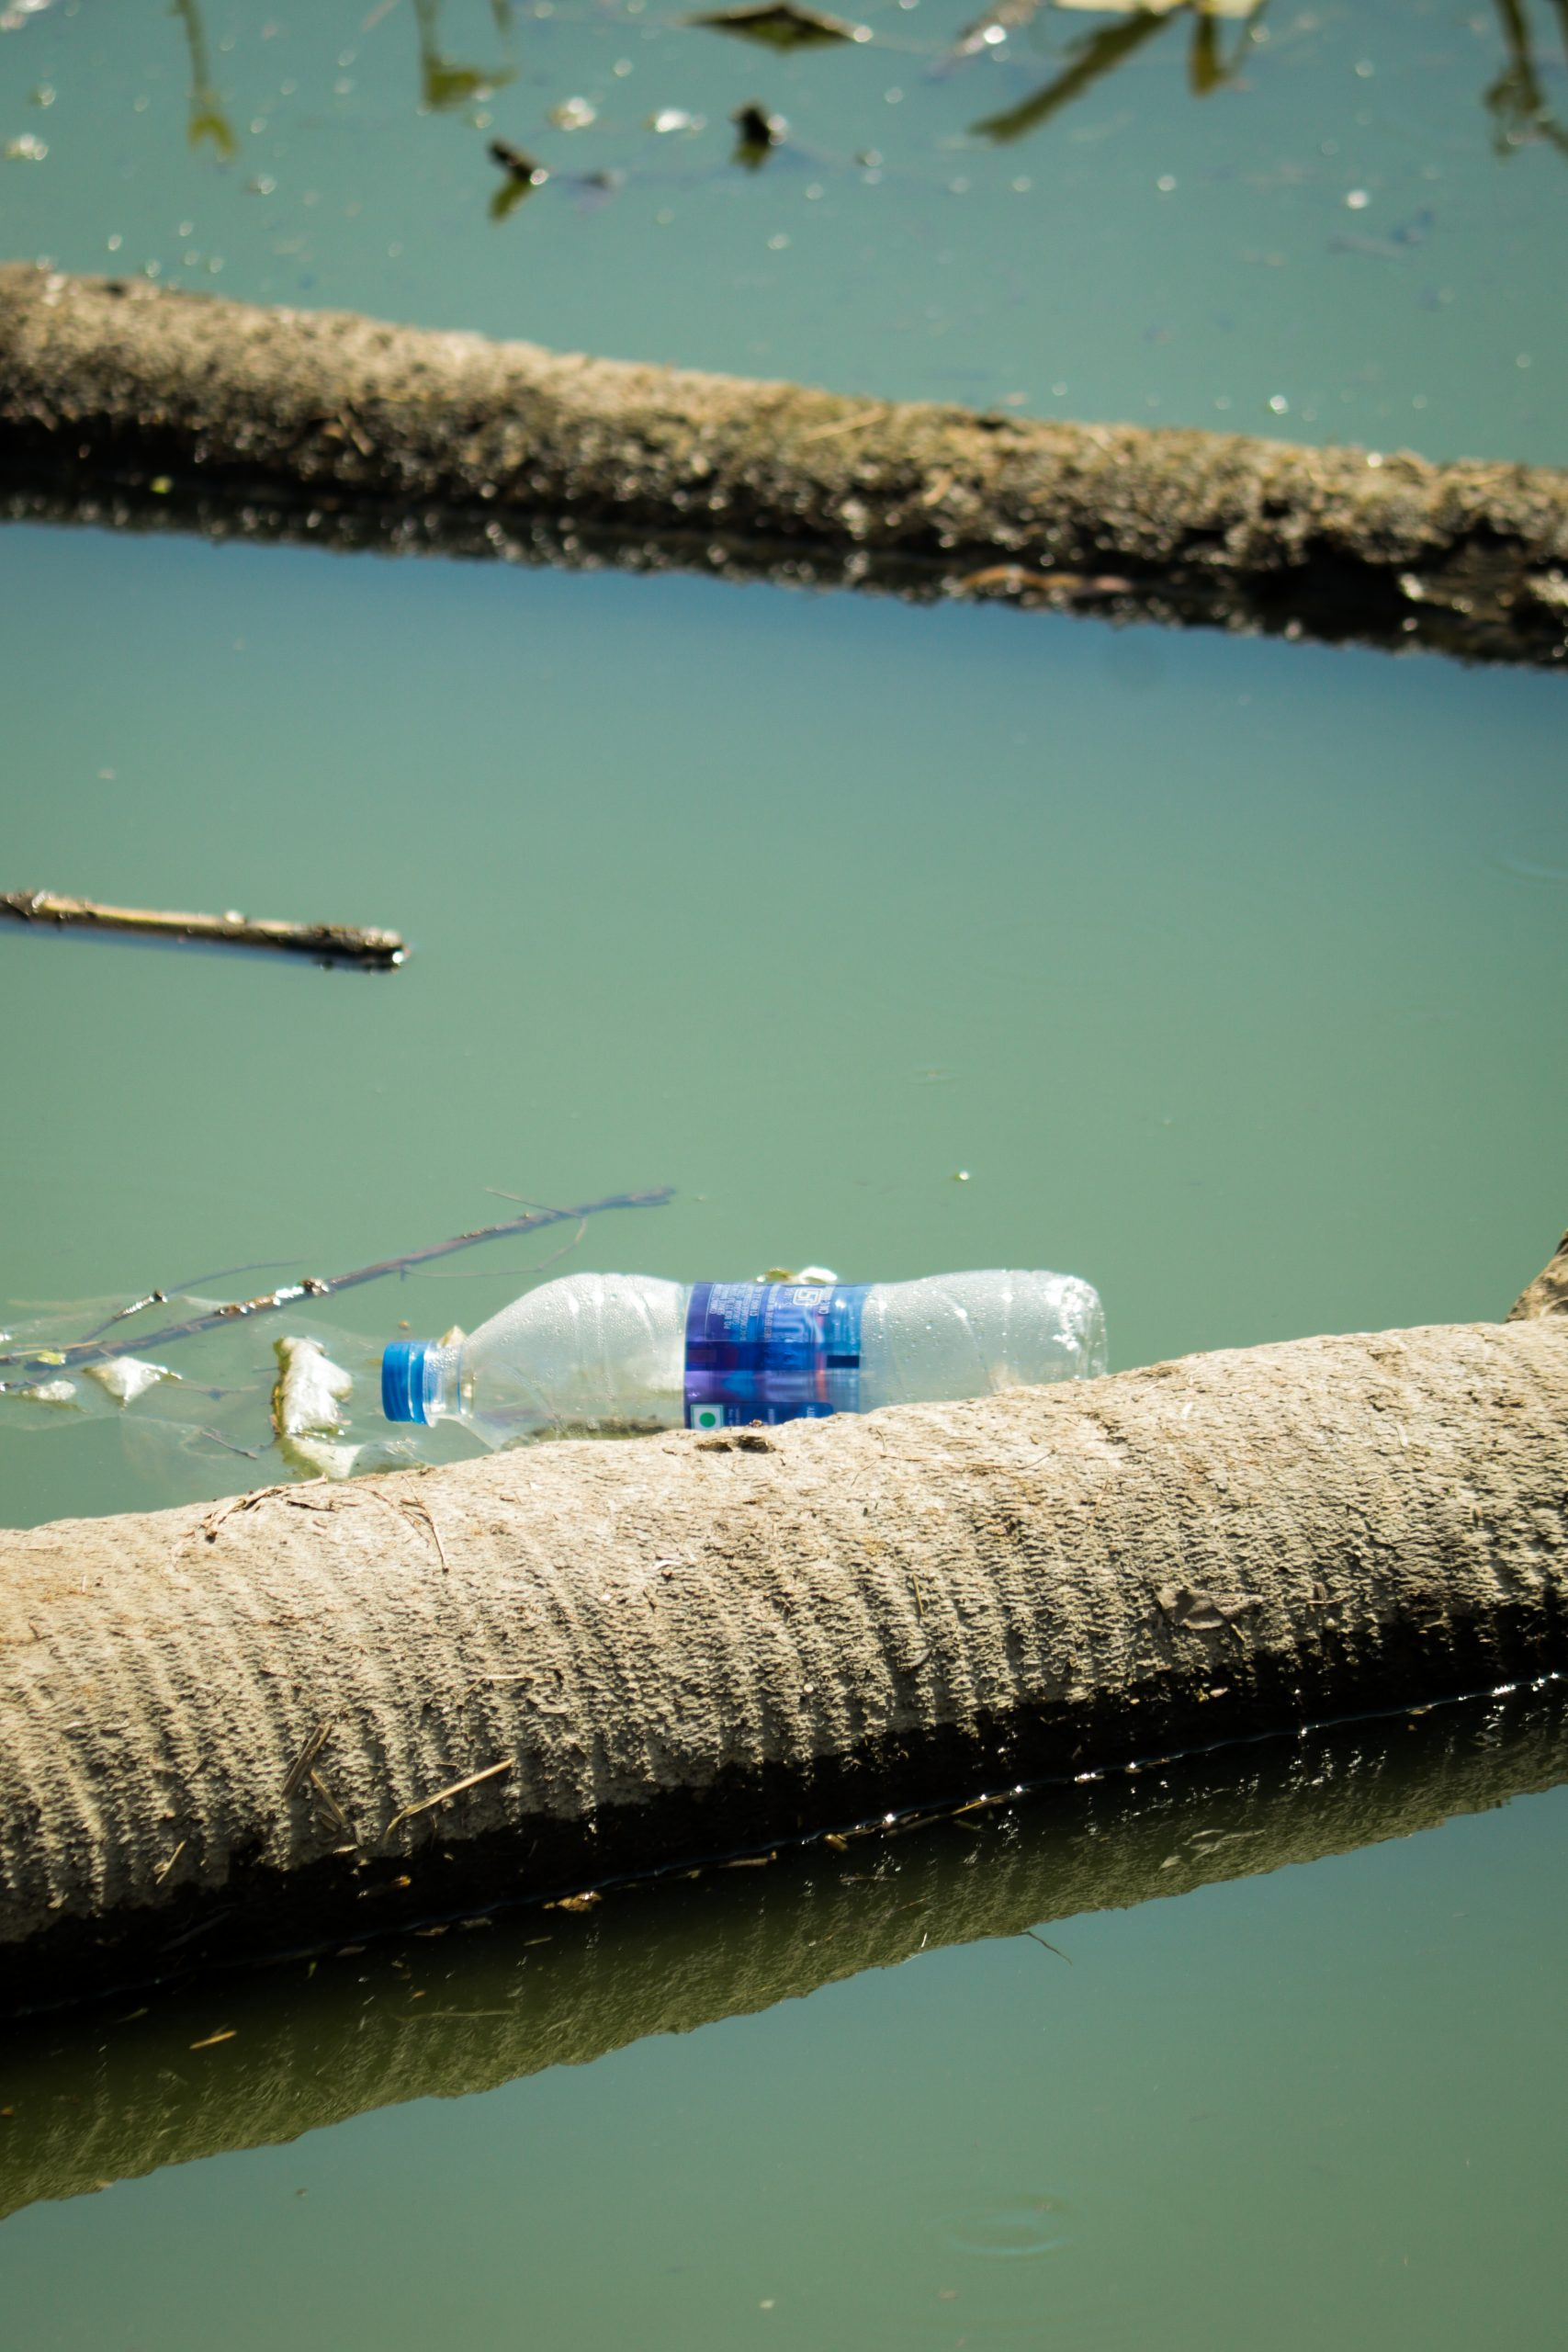 Plastic bottle in a water resource